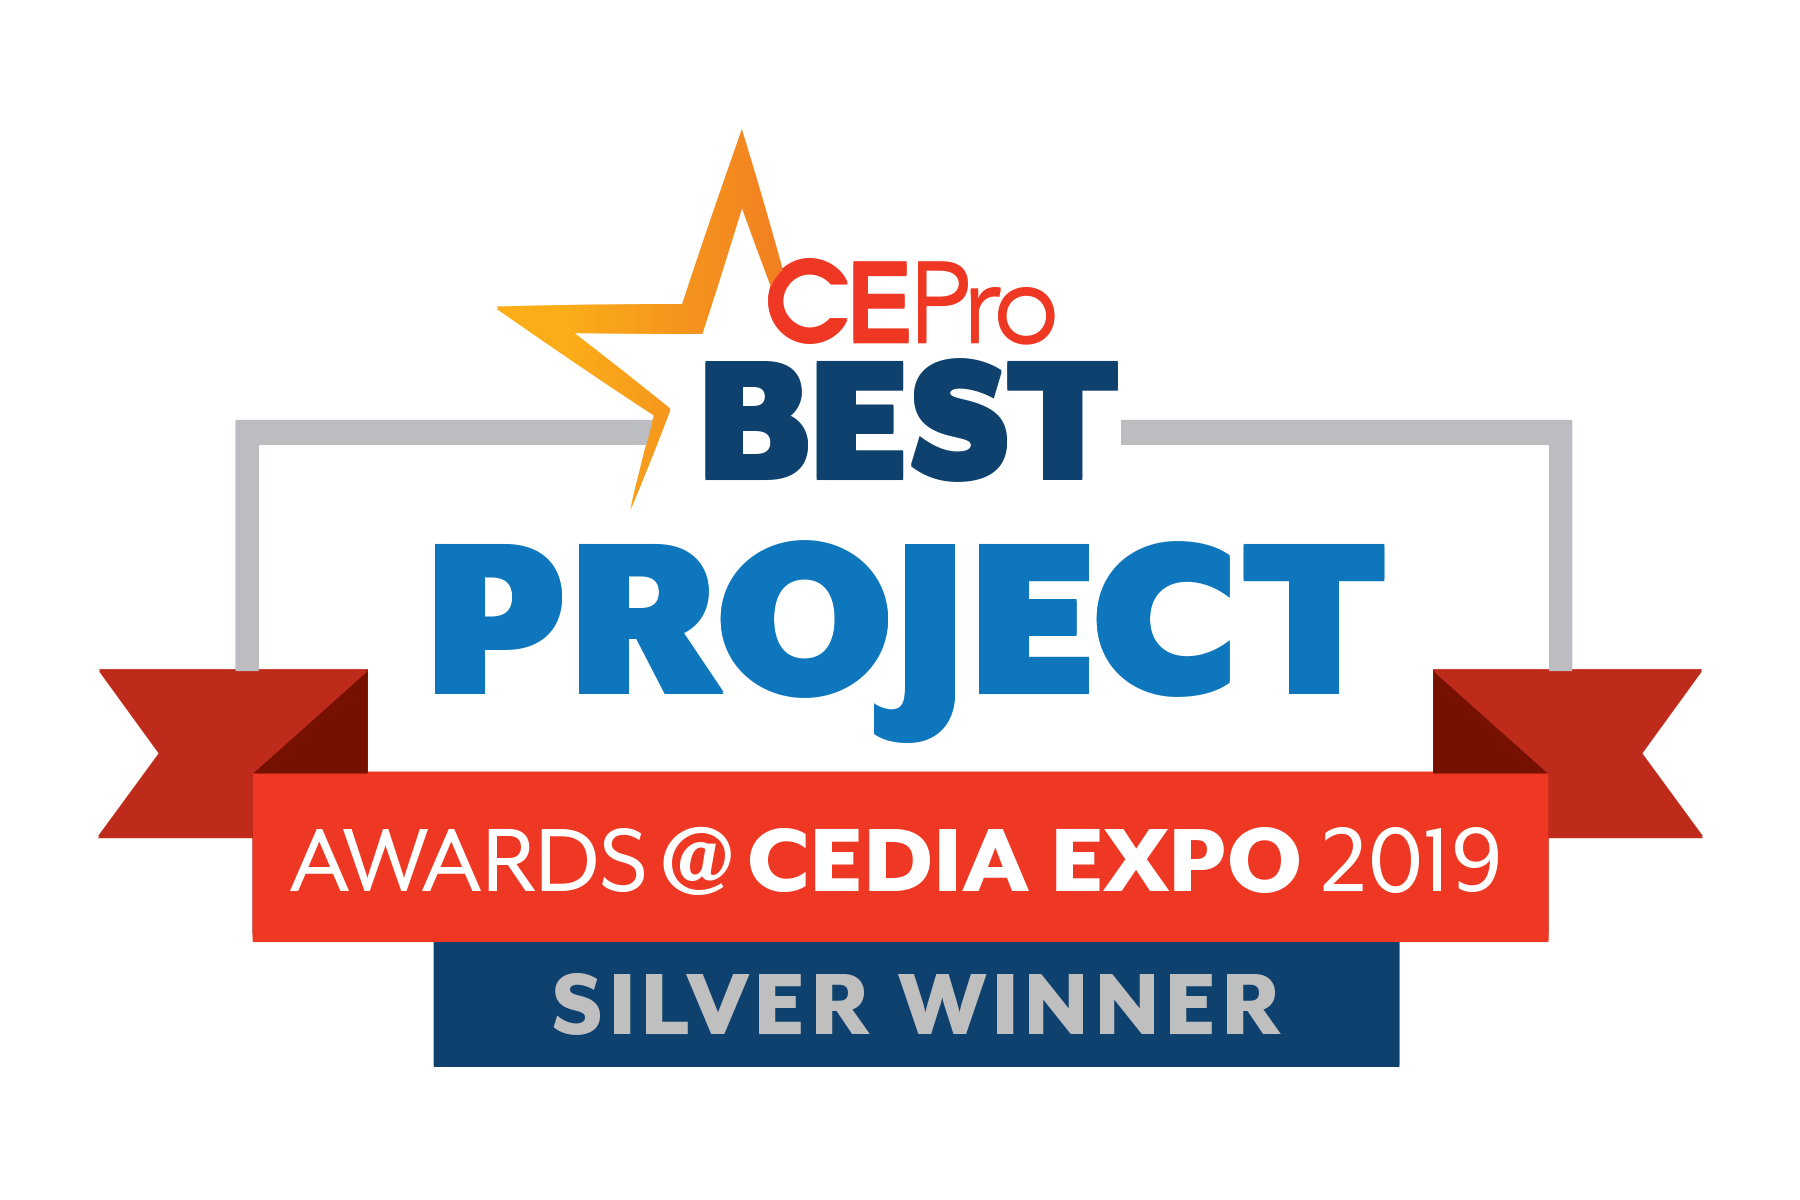 """TYM """"Tahoe Theater"""" Takes Silver in CE Pro 2019 BEST Award, Featuring the EPV Screens Special Edition A4K (SE138C-A4K)"""